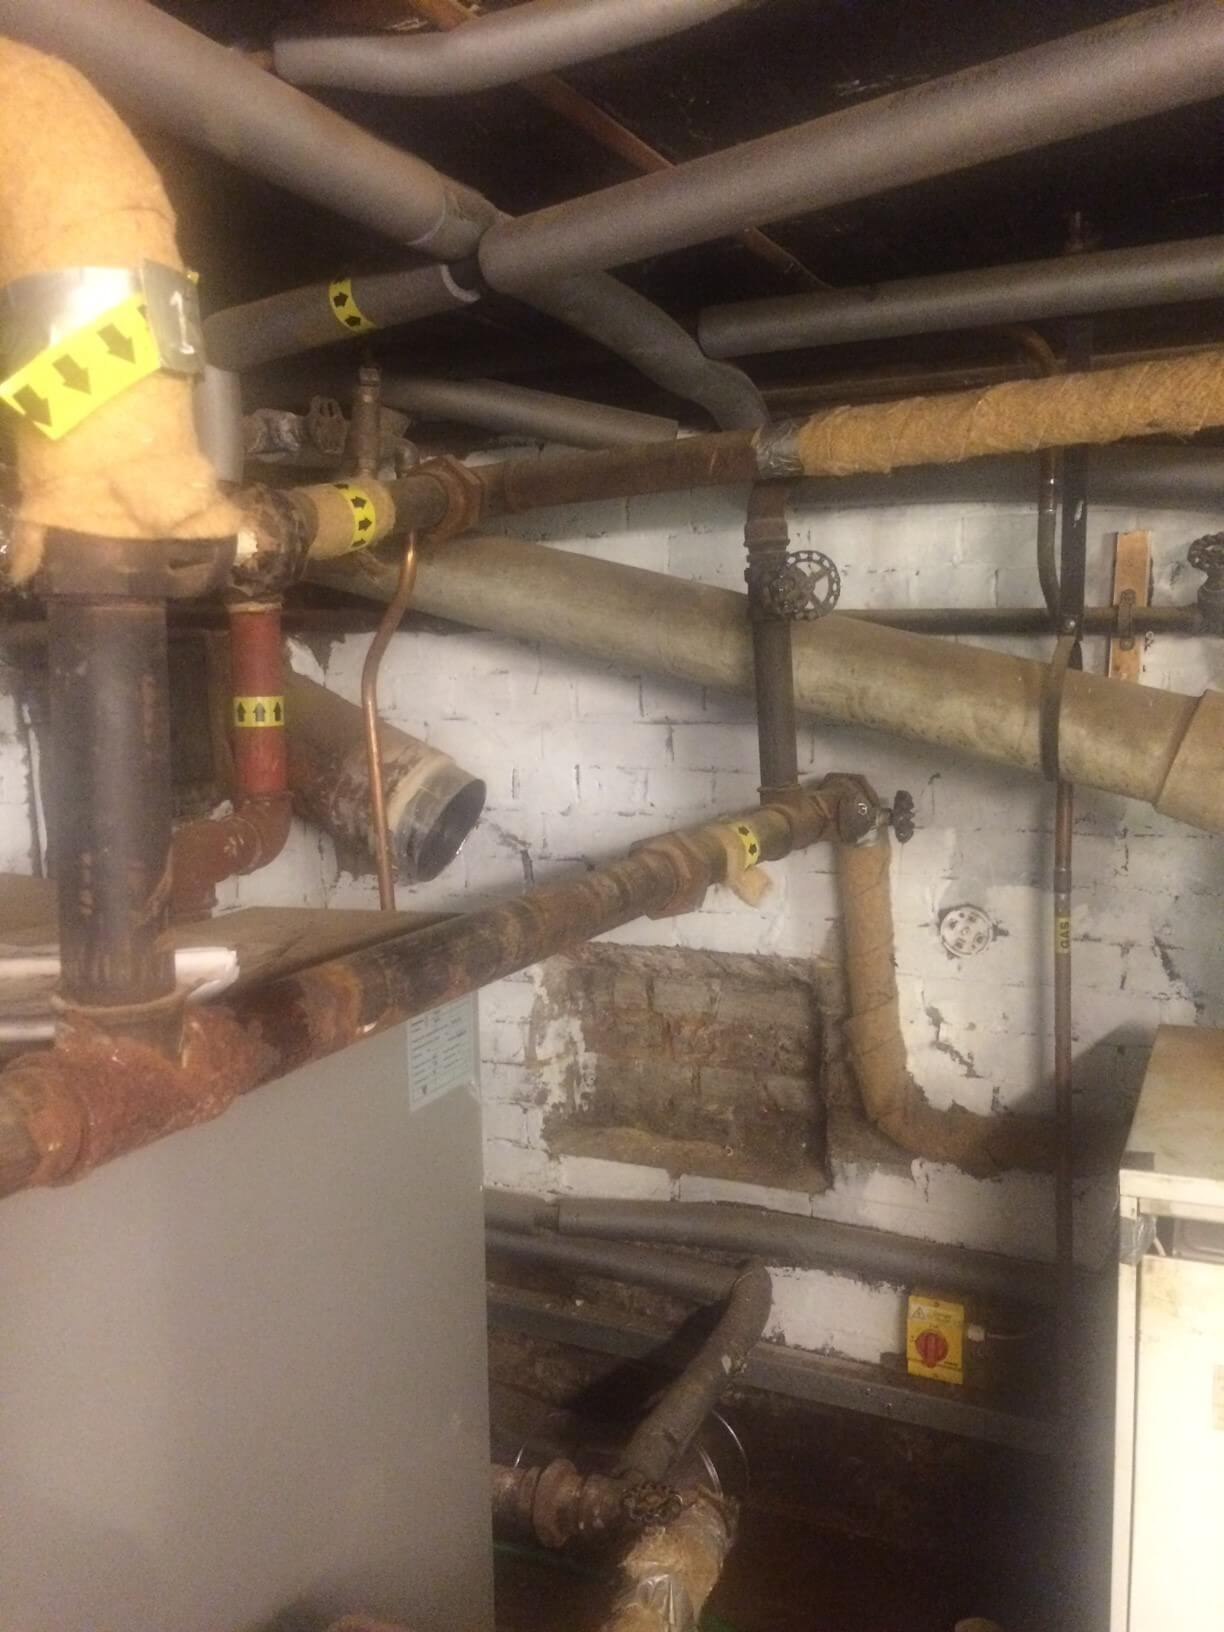 Old pipework had been modified over the years